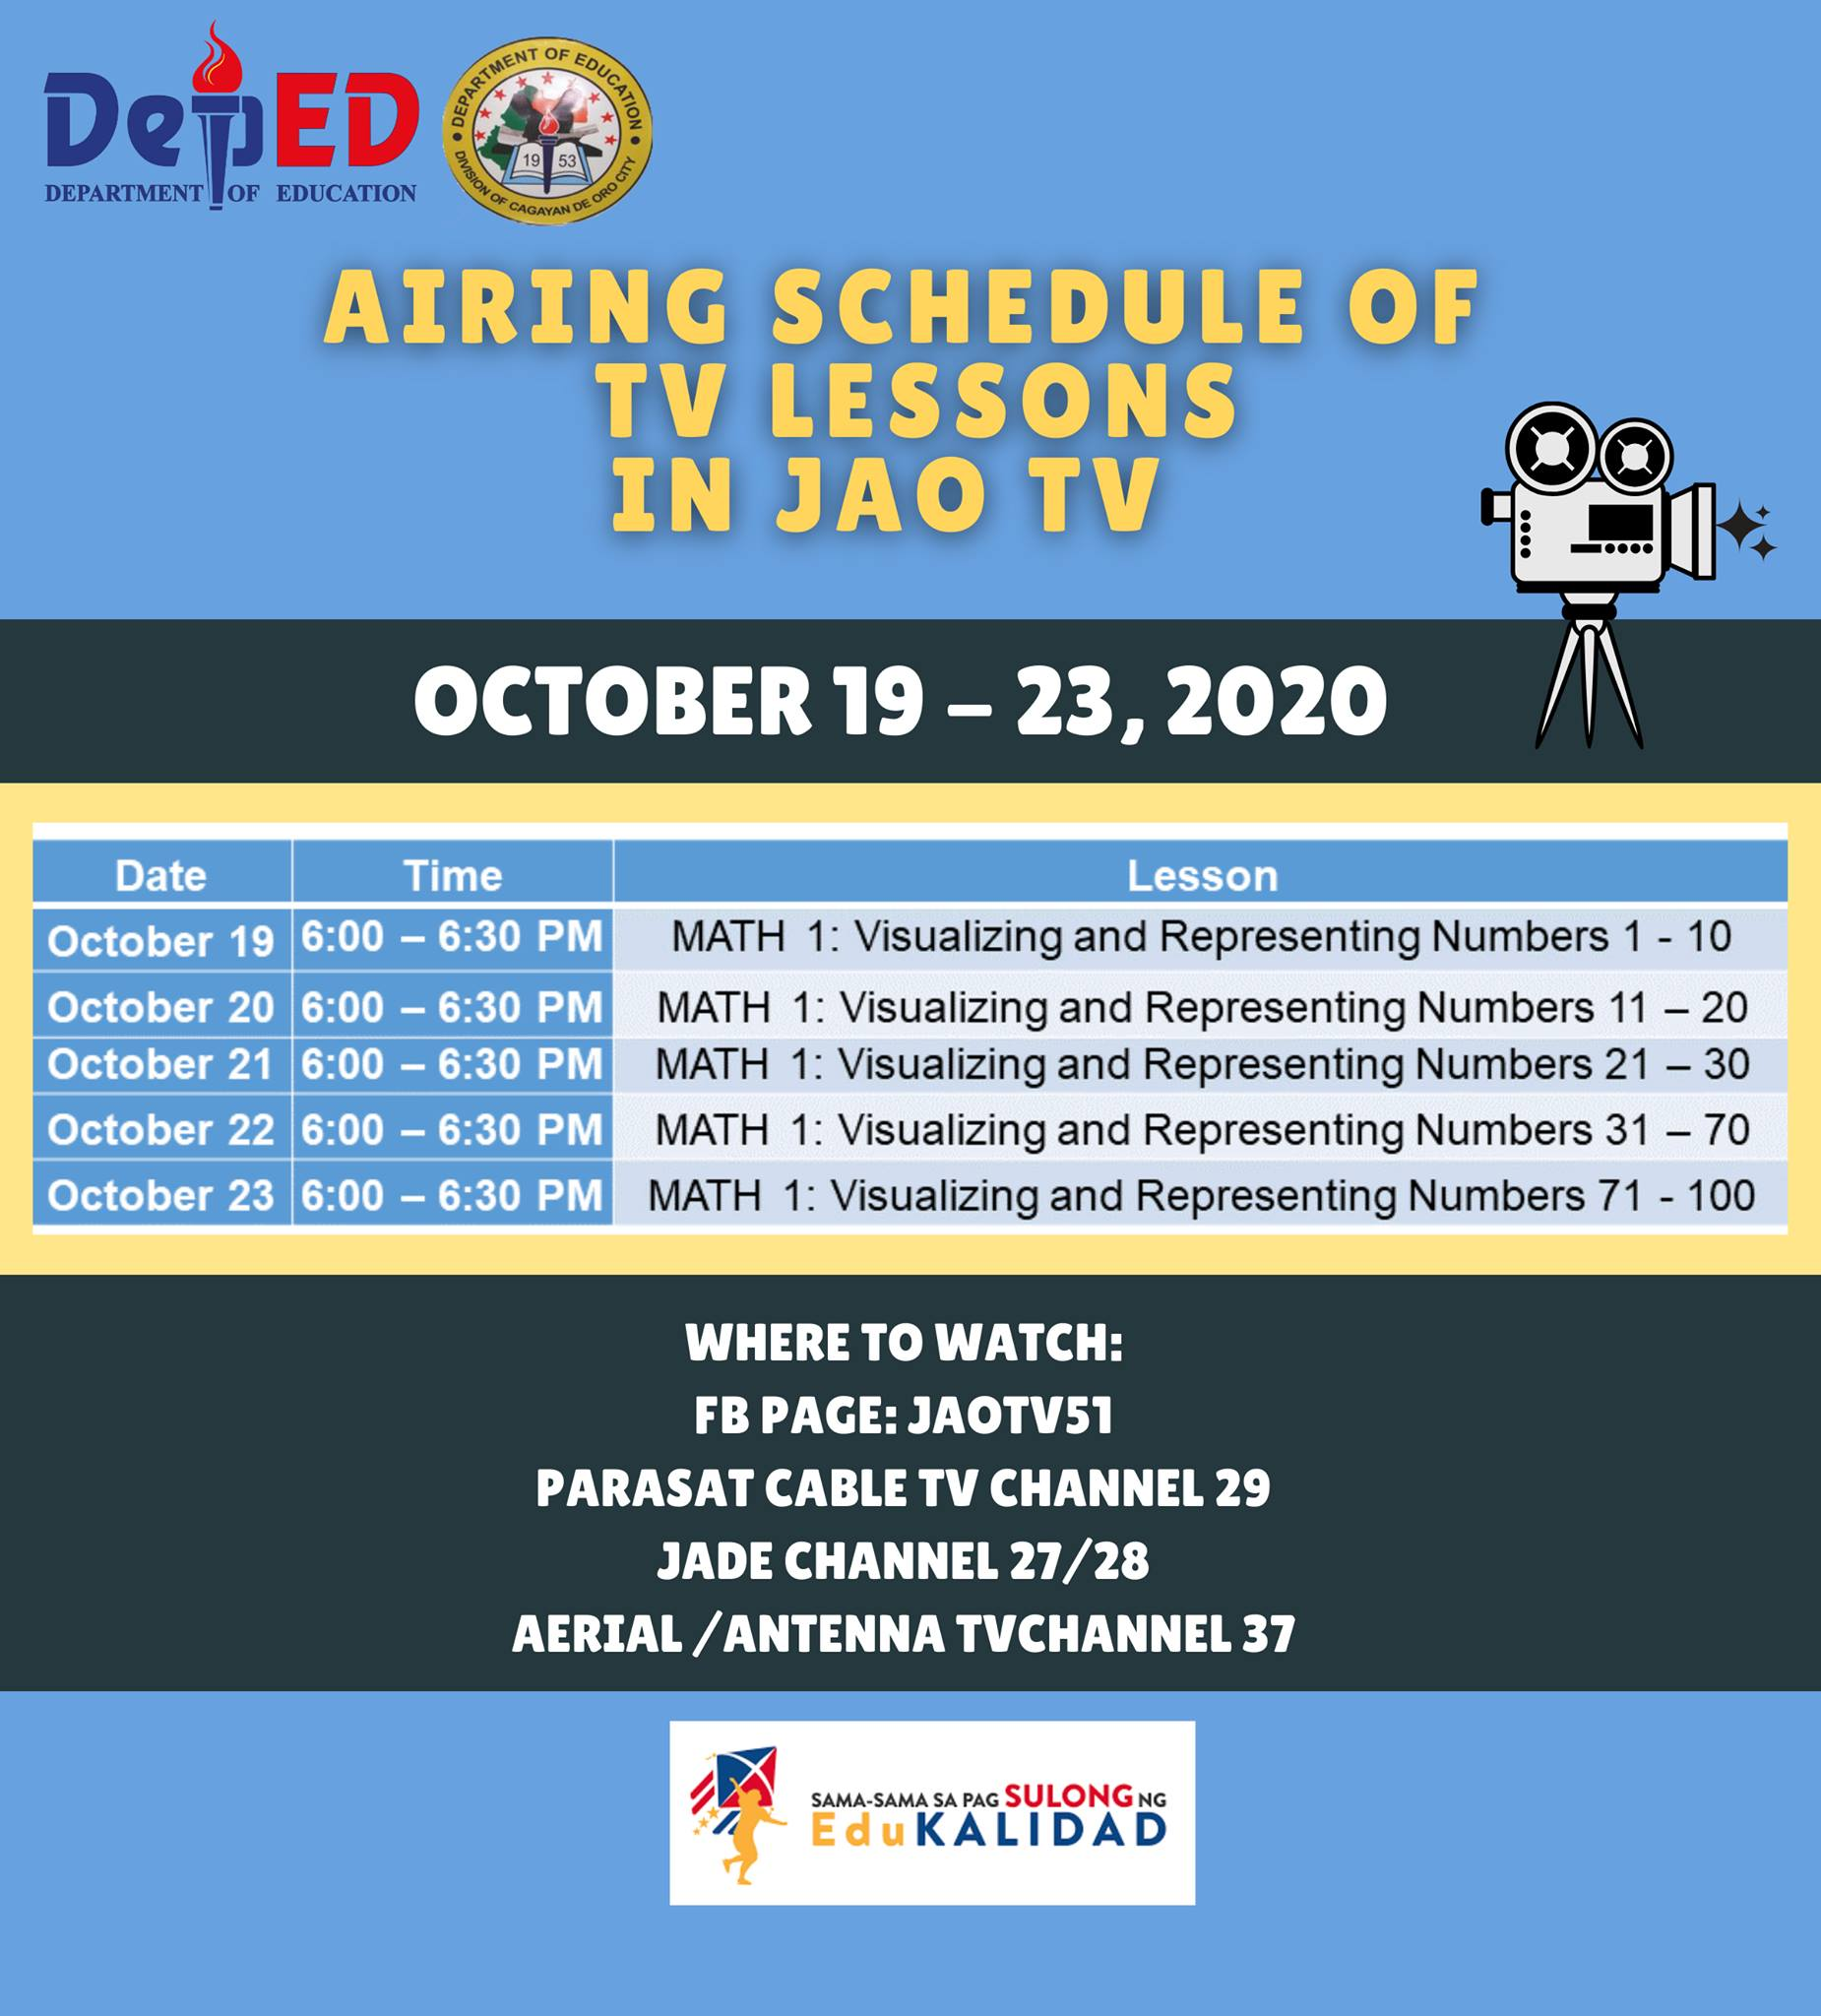 jao-tv-lessons-3rd-week